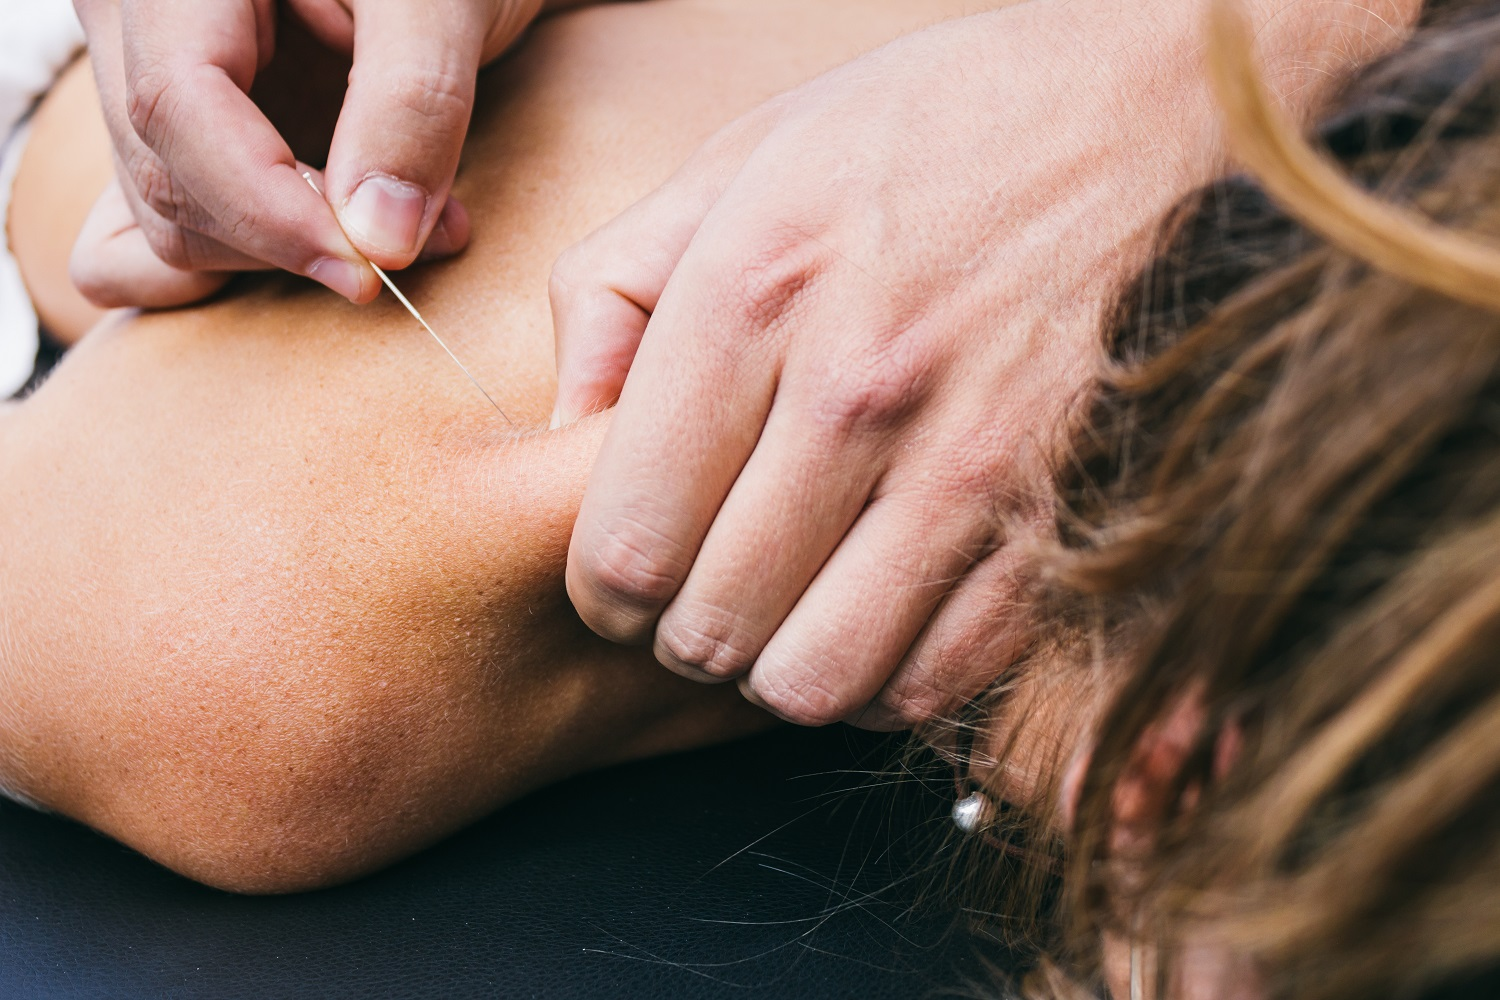 What is Dry Needling & What to Expect During Treatment?